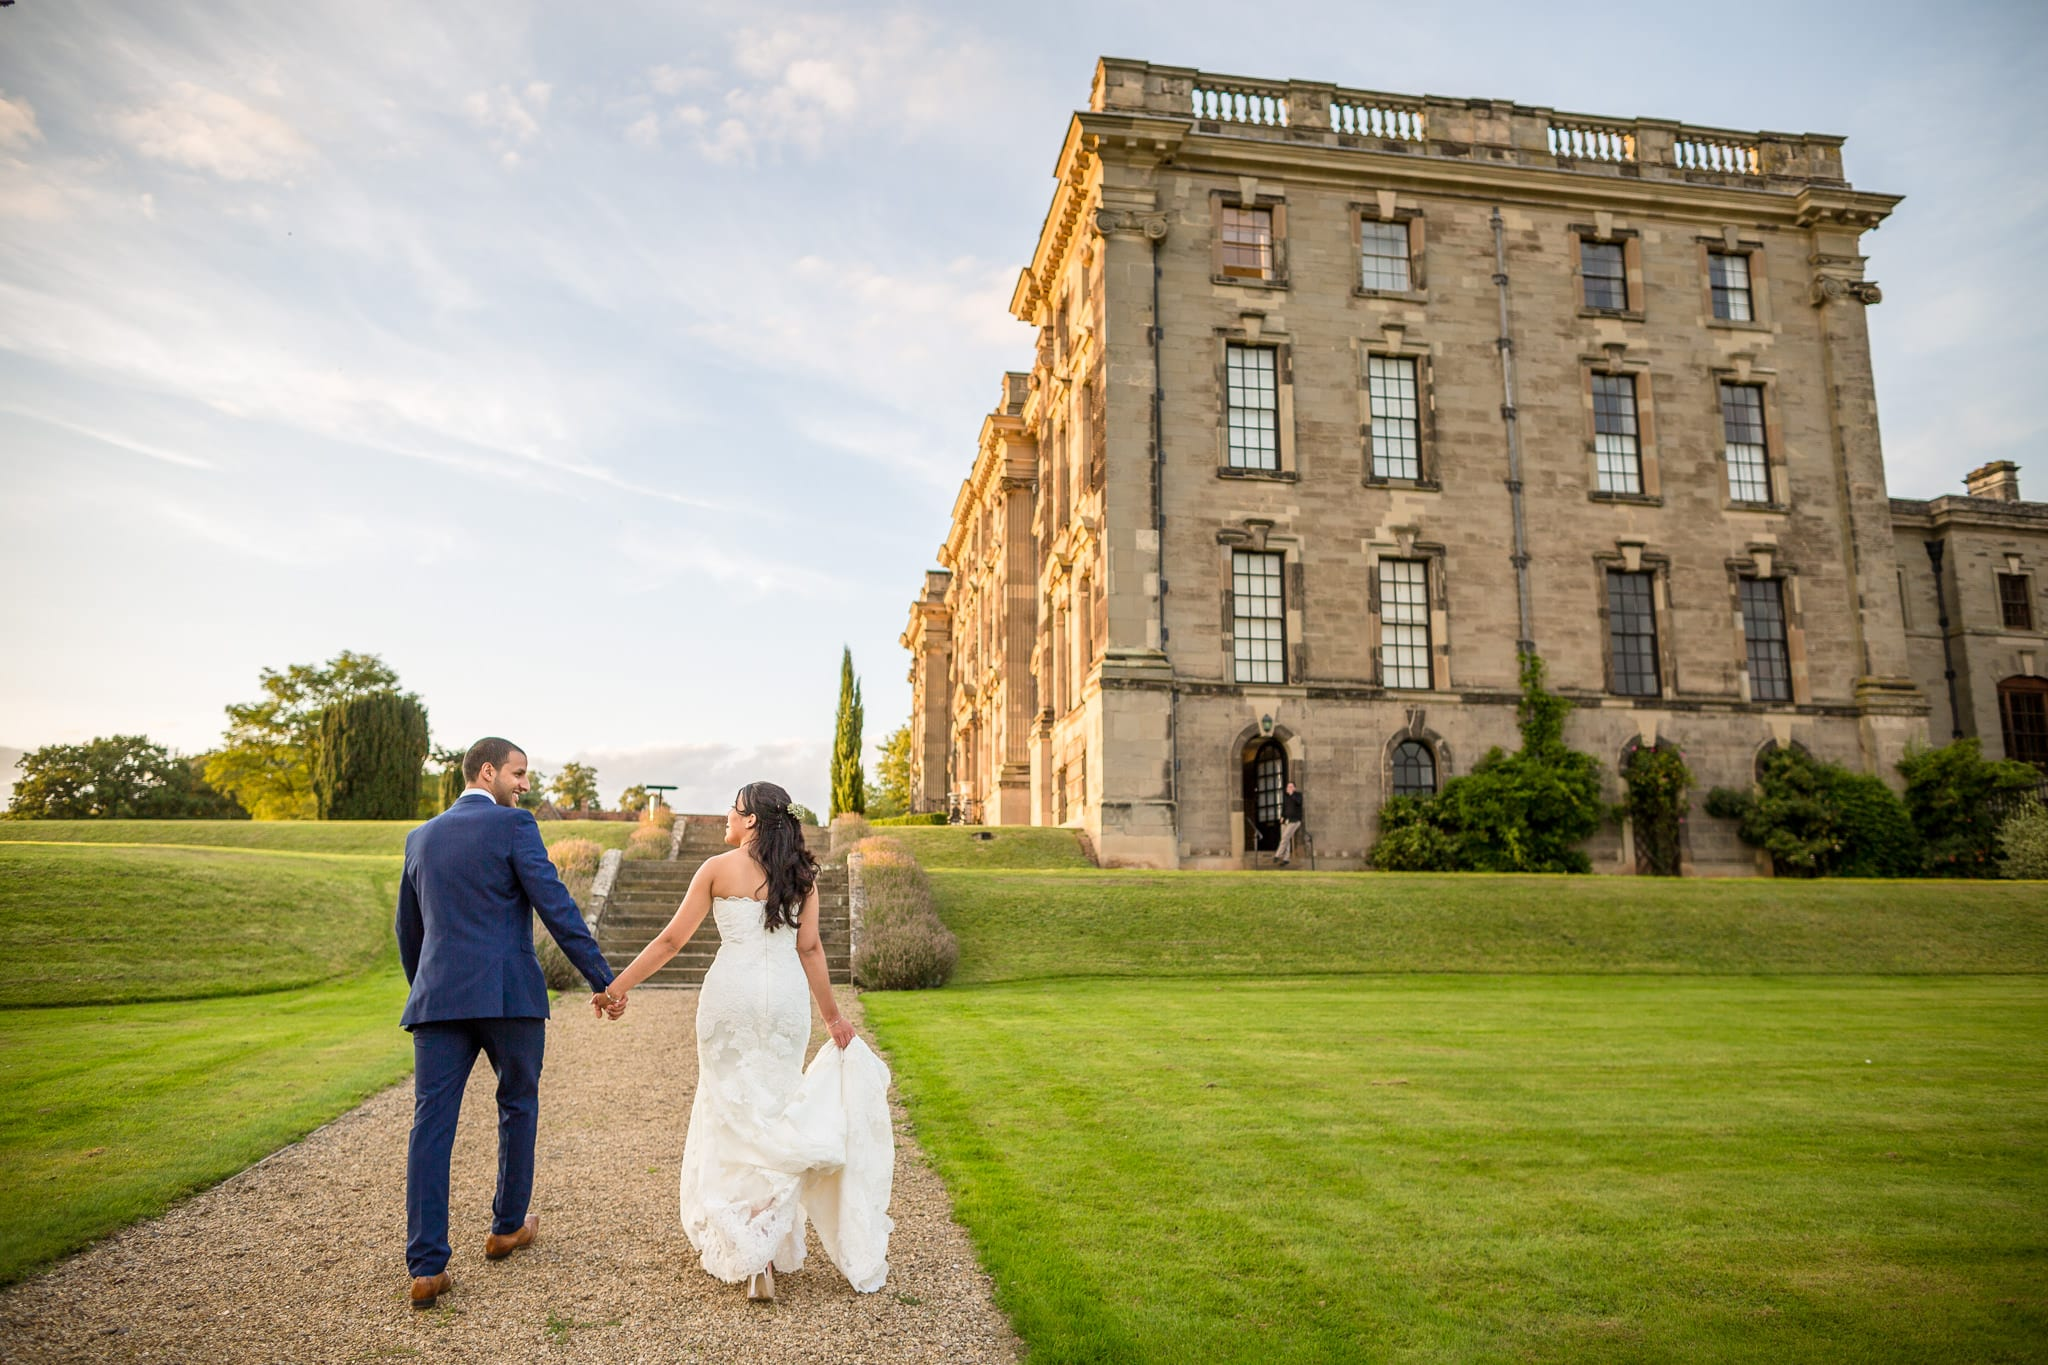 Bride and groom holding hands, walking towards a grand building. by Stoneleigh Abbey Wedding Photographer, S2 Images